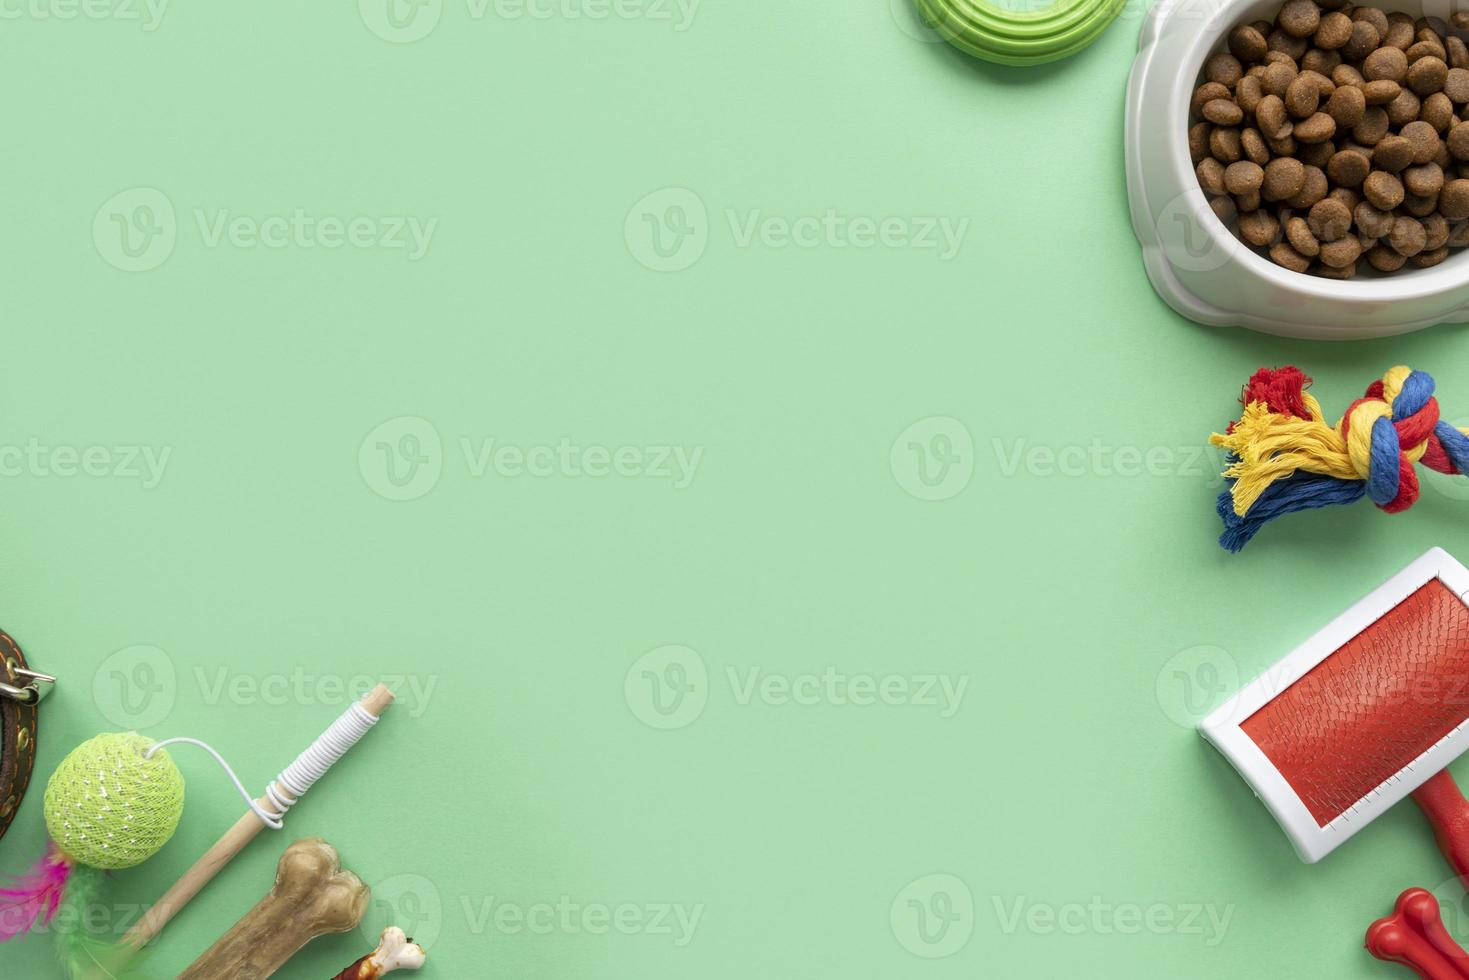 Top view on pet accessories and food photo